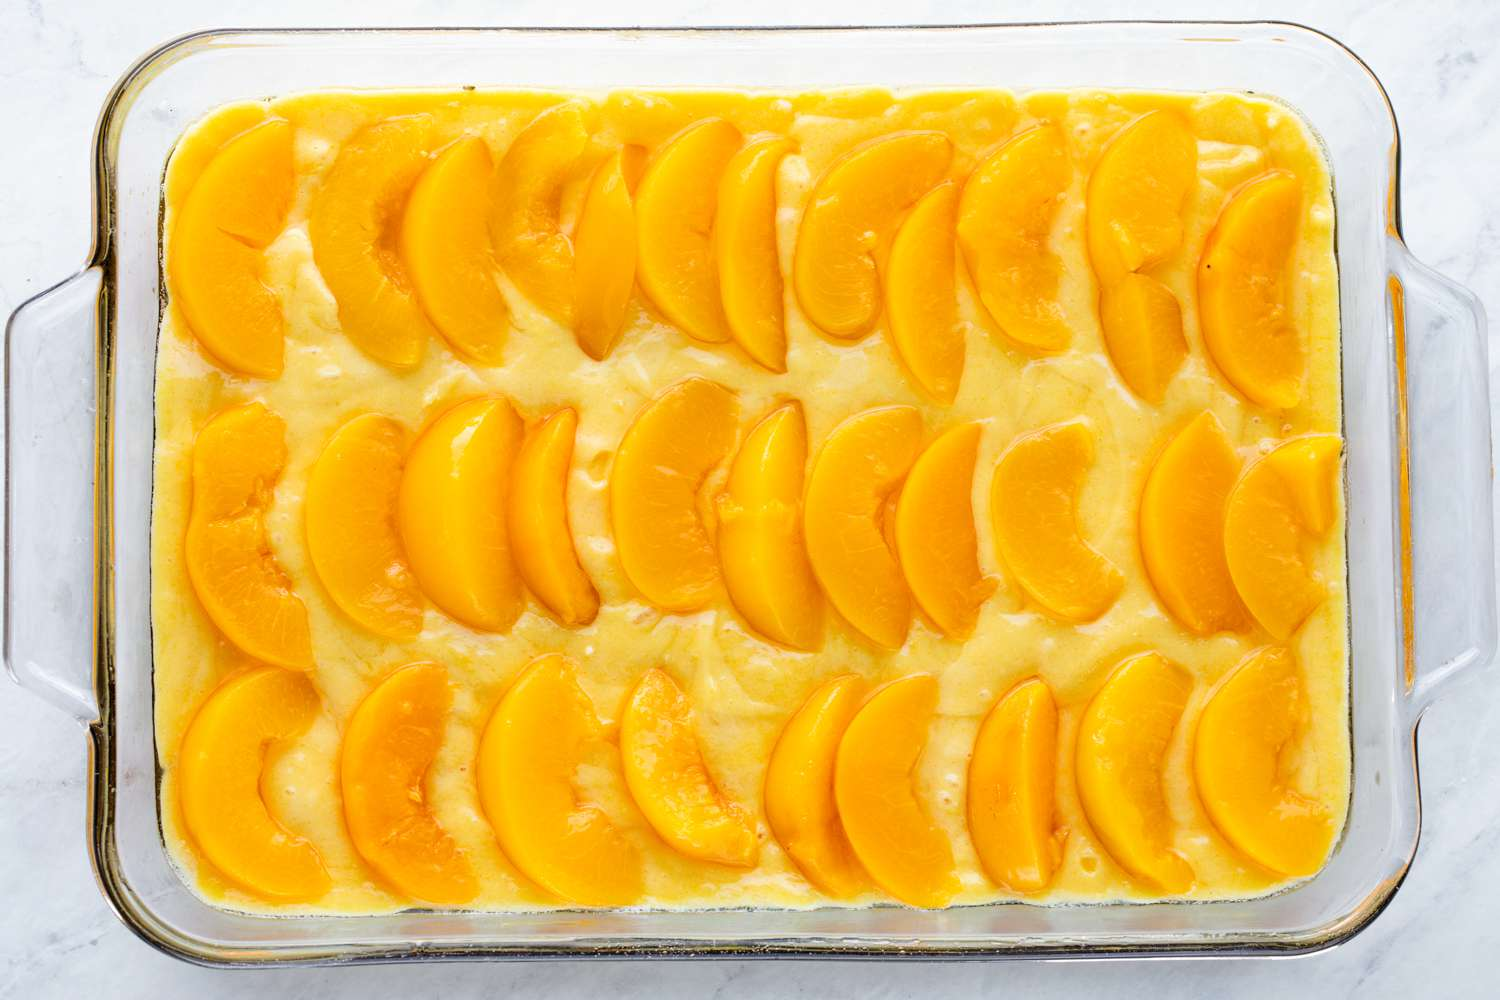 Layer drained peaches on top of the batter